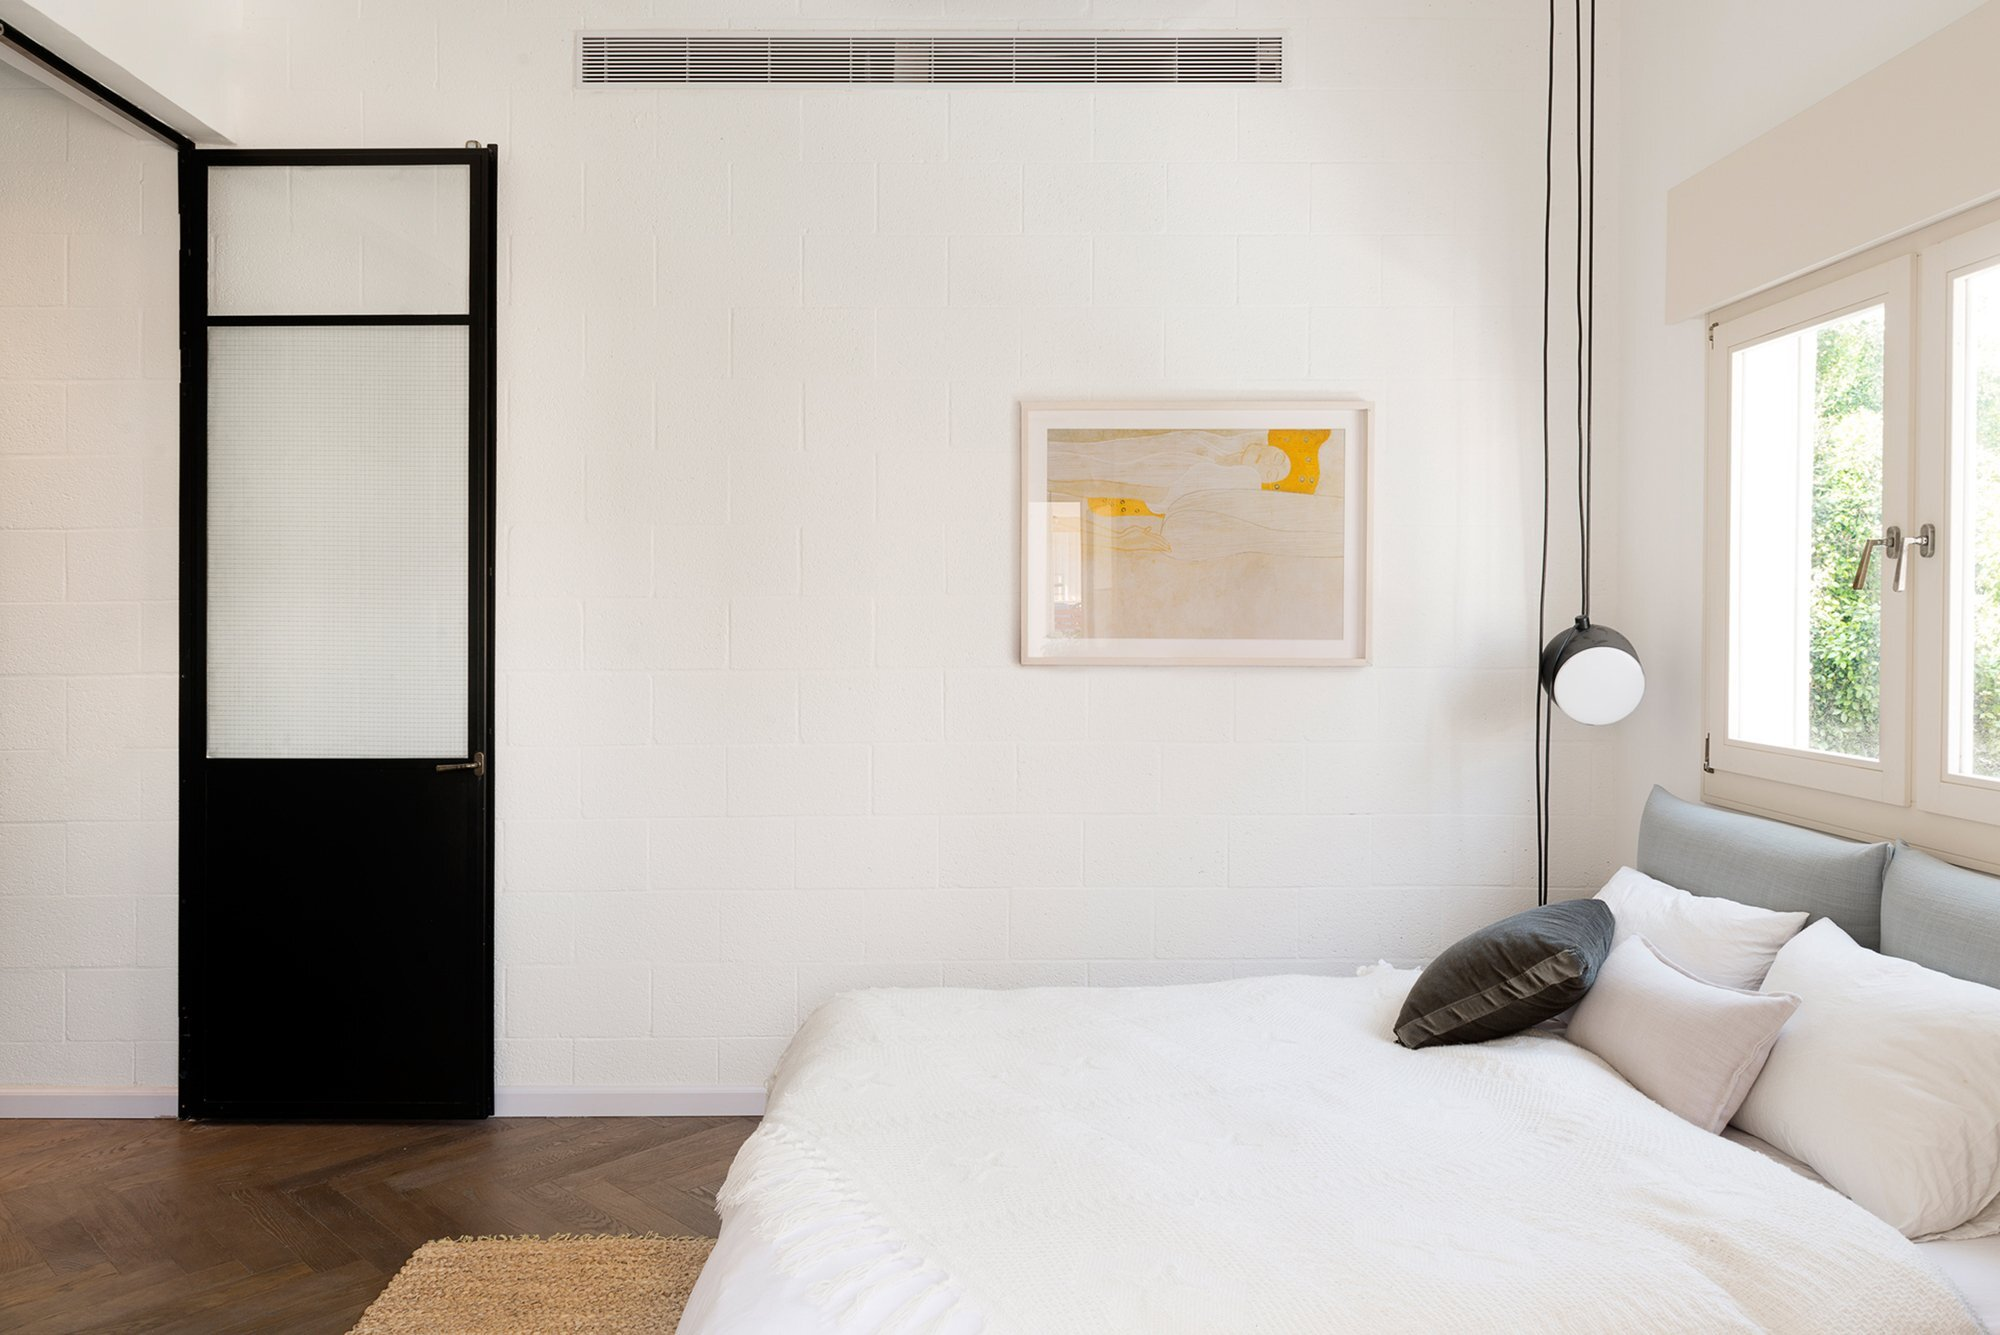 Bauhaus Apartment Redesign - Small Apartment - Studio Raanan Stern Architect - Tel Aviv - Bedroom - Humble Homes